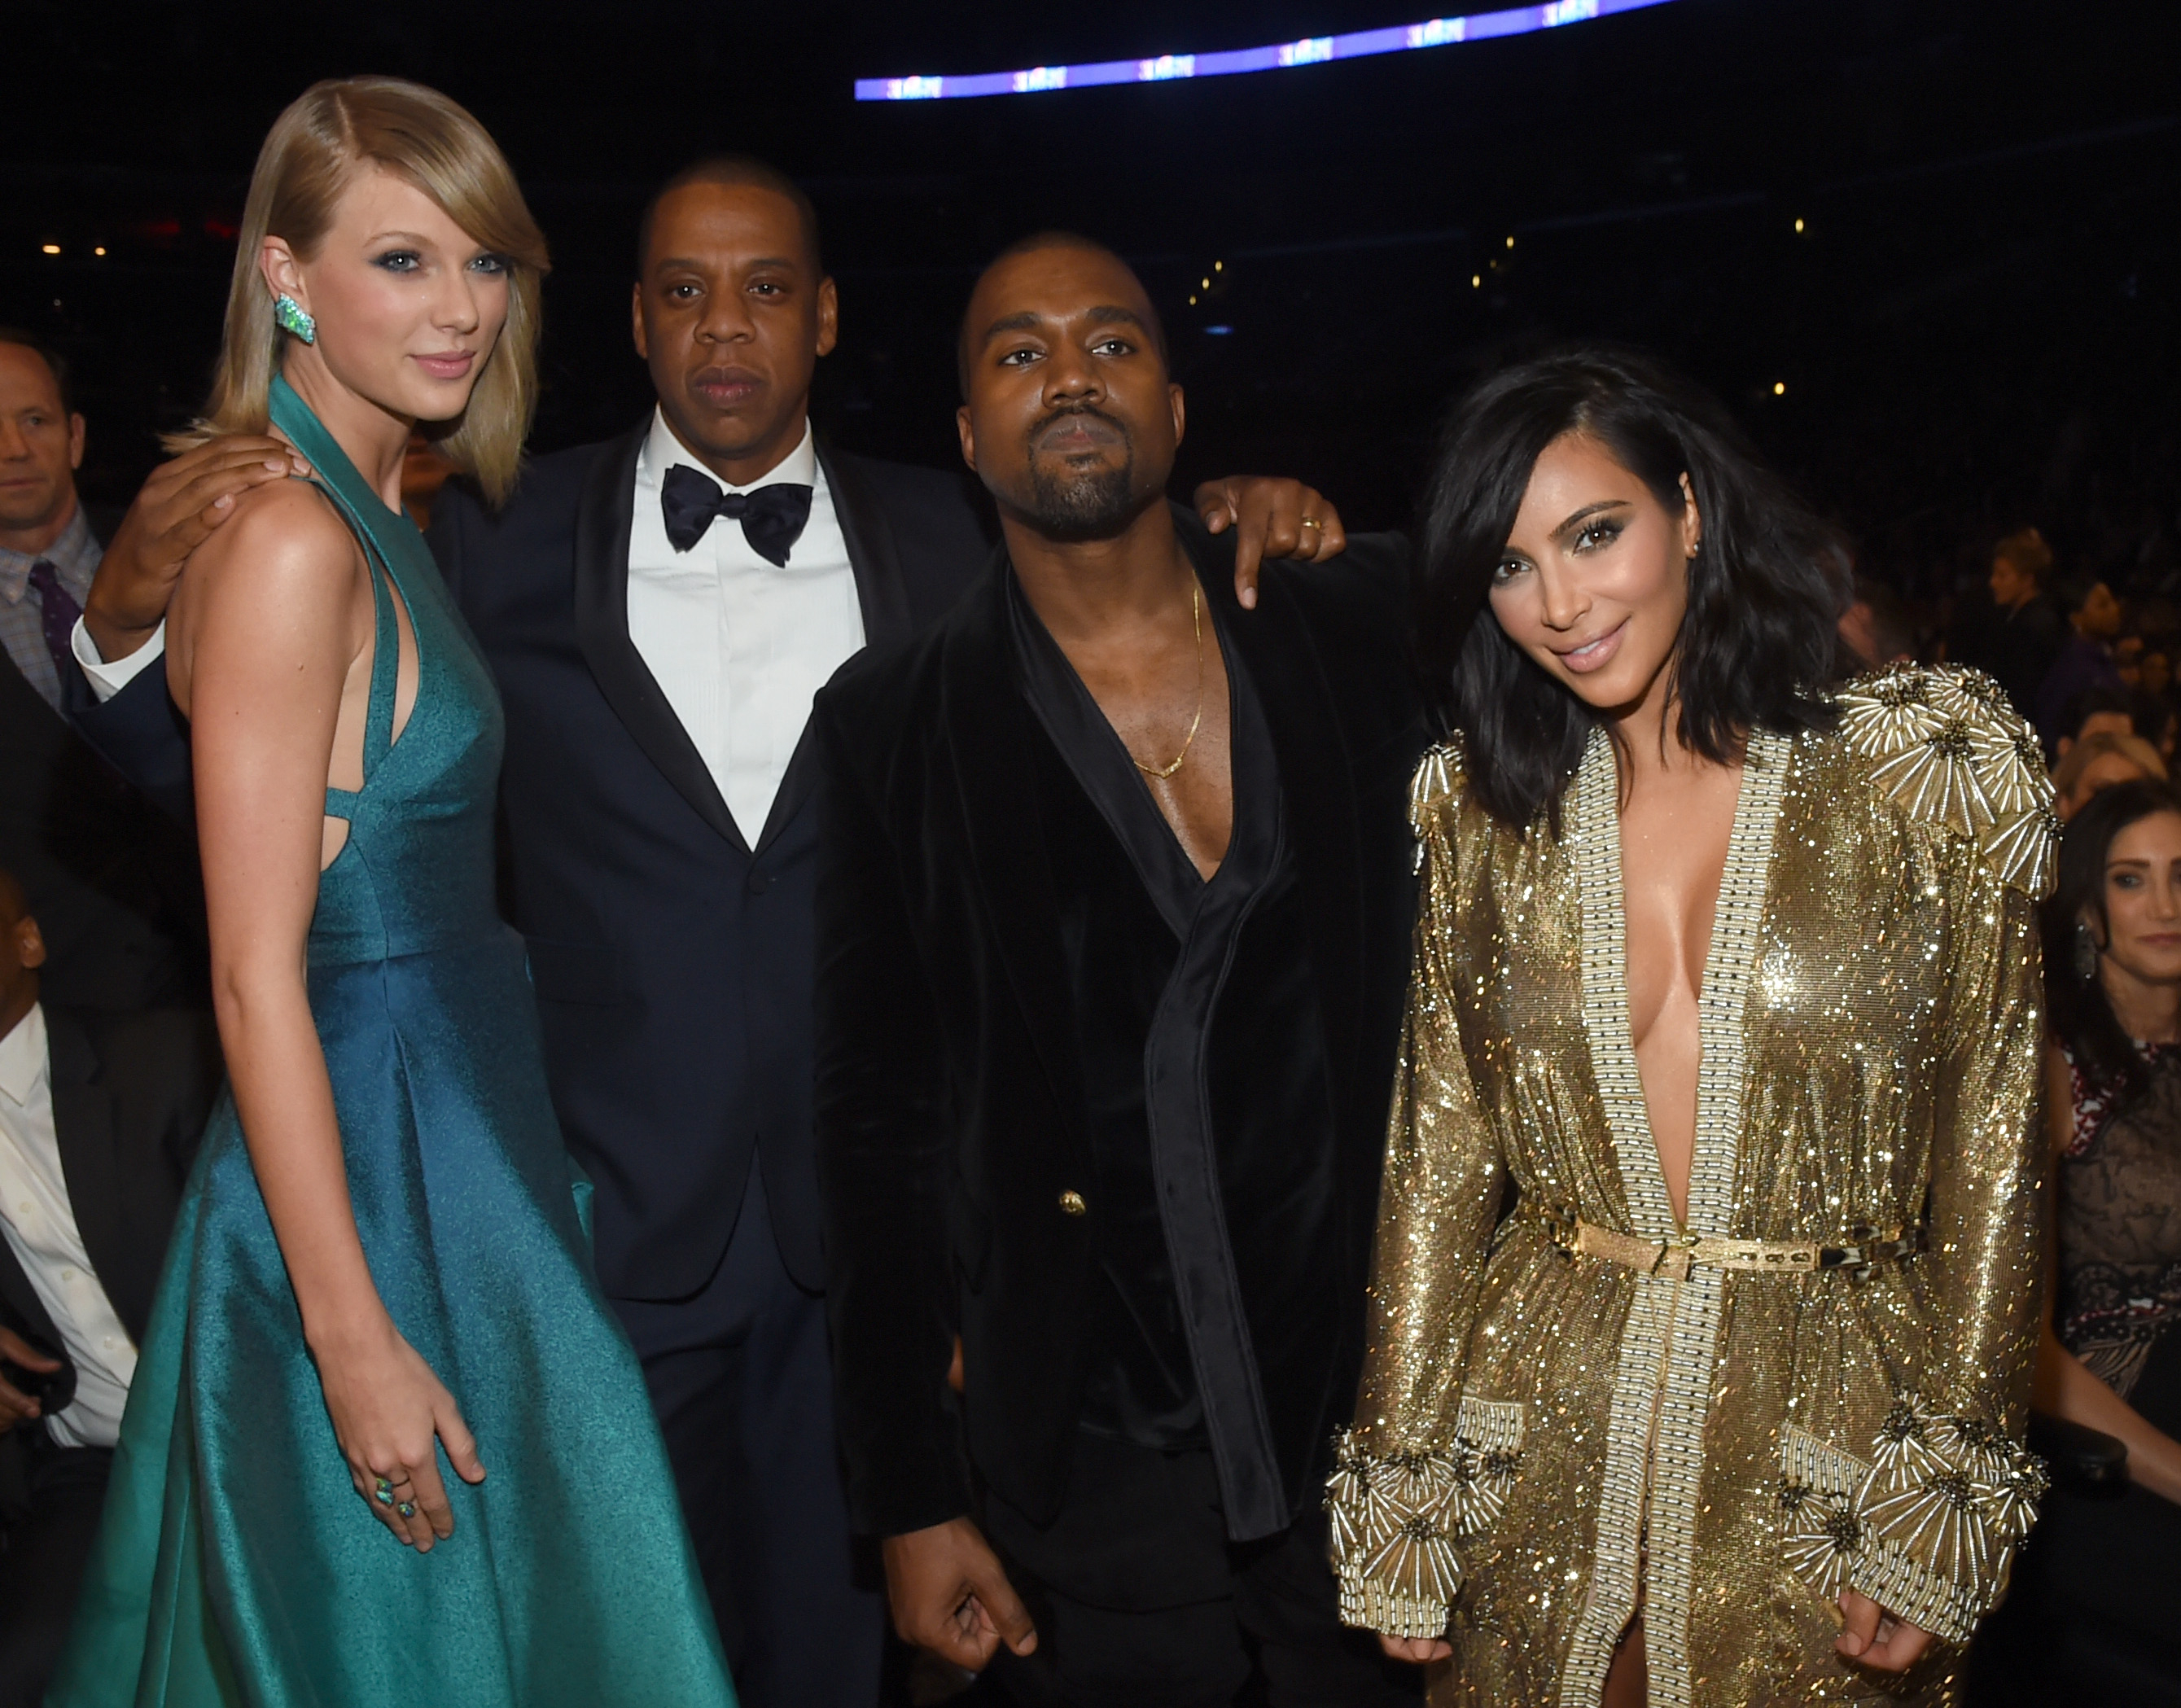 picture Taylor Swift Shades Kim Kardashian by Wearing a Snake Outfit on Their SnapchatAnniversary